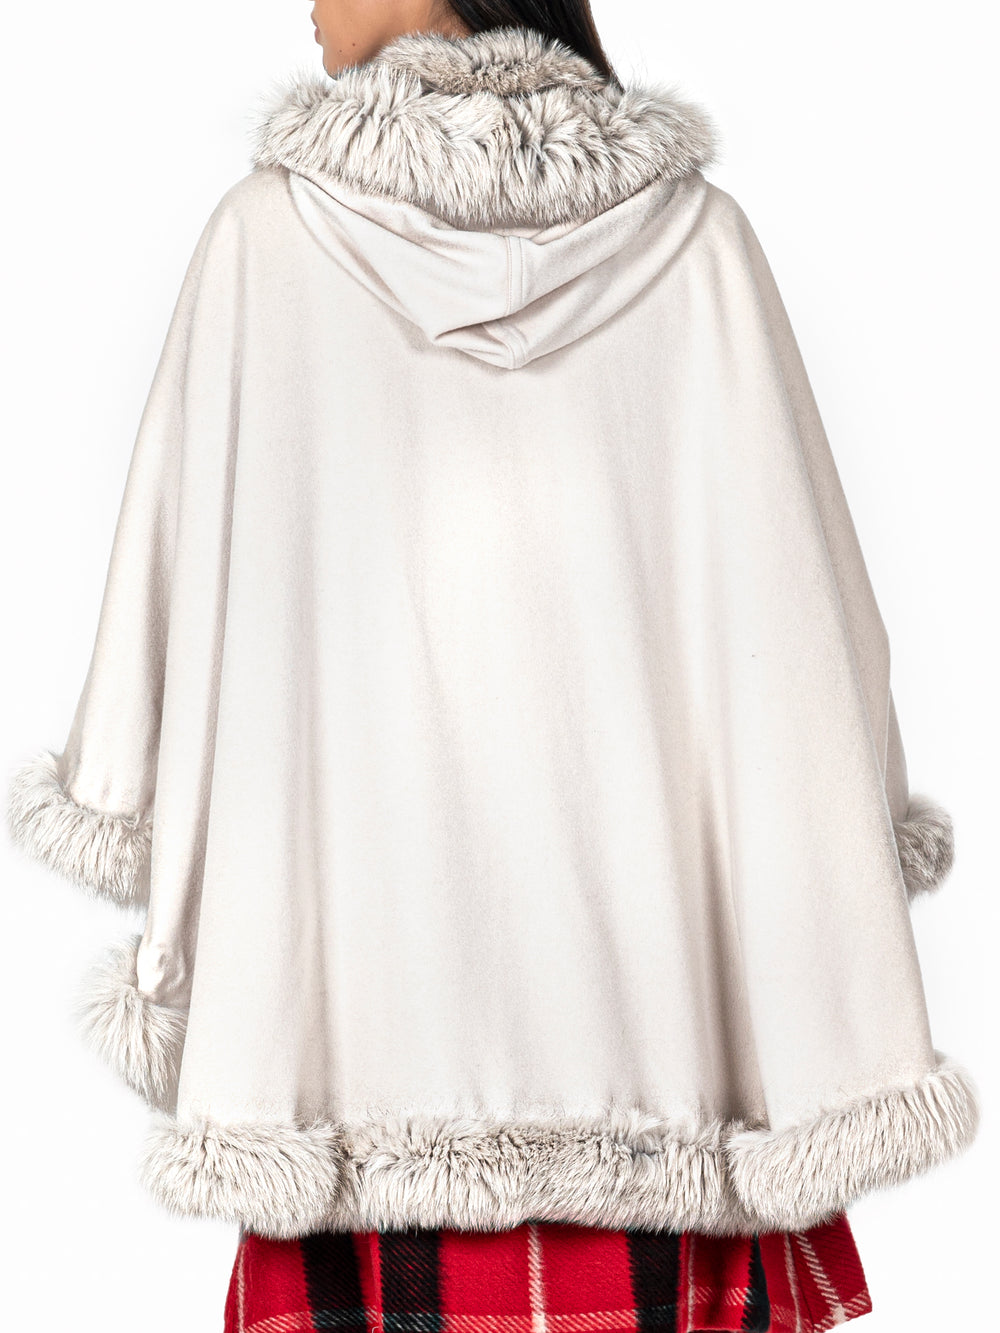 Fur-Trimmed Cashmere Cape